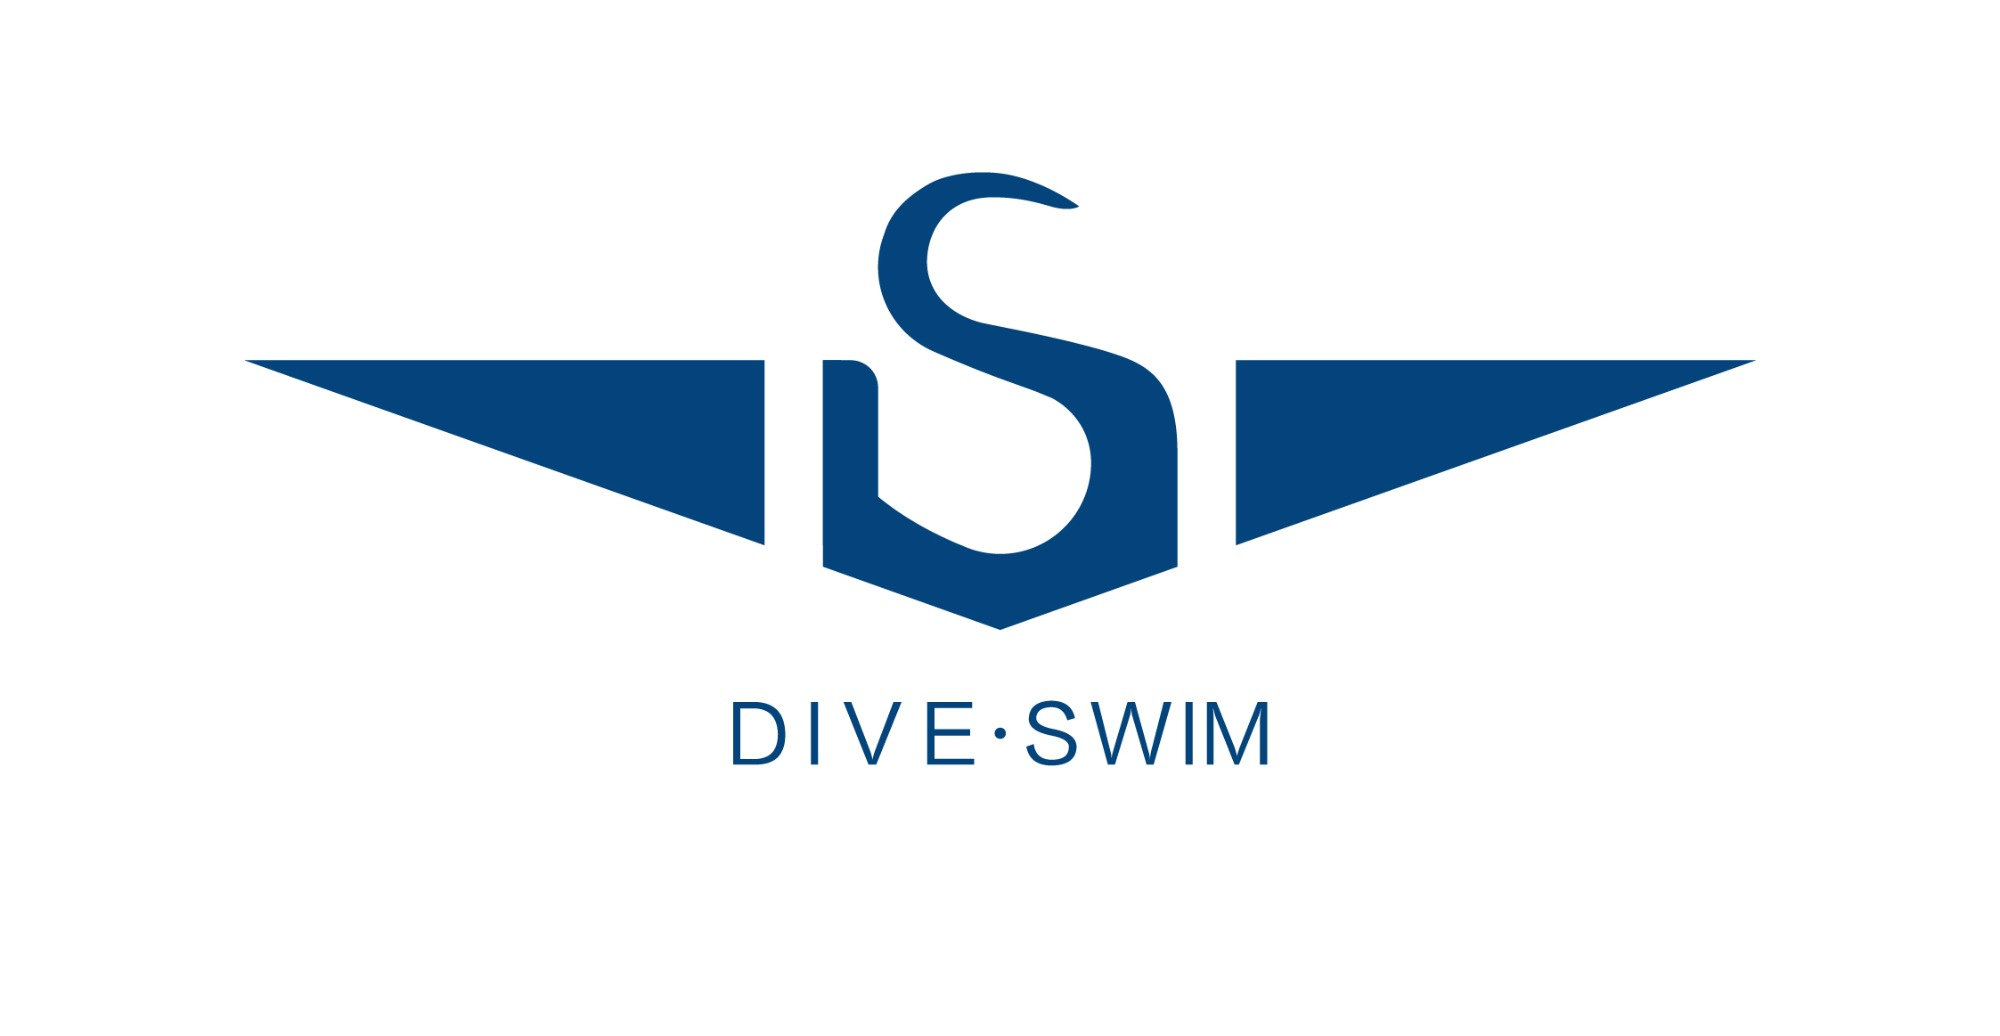 DIVE.SWIM-Aim To Beyond